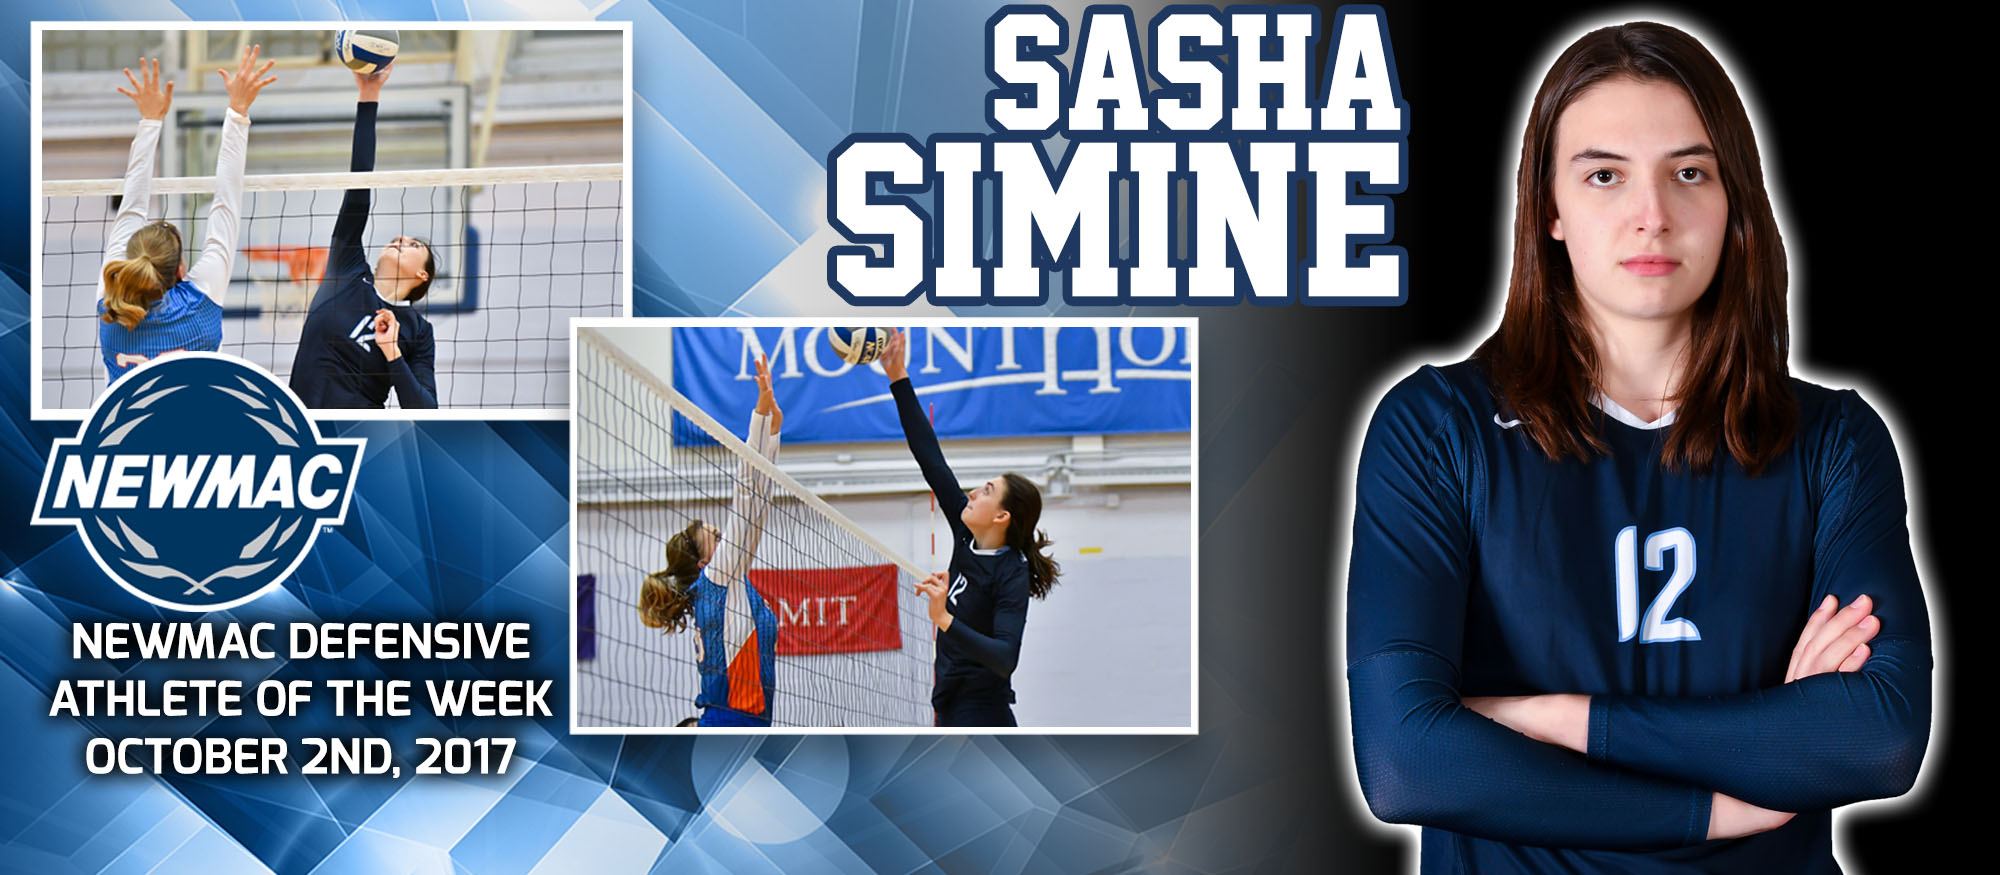 Sasha Simine Defensive Athlete of the Week graphic